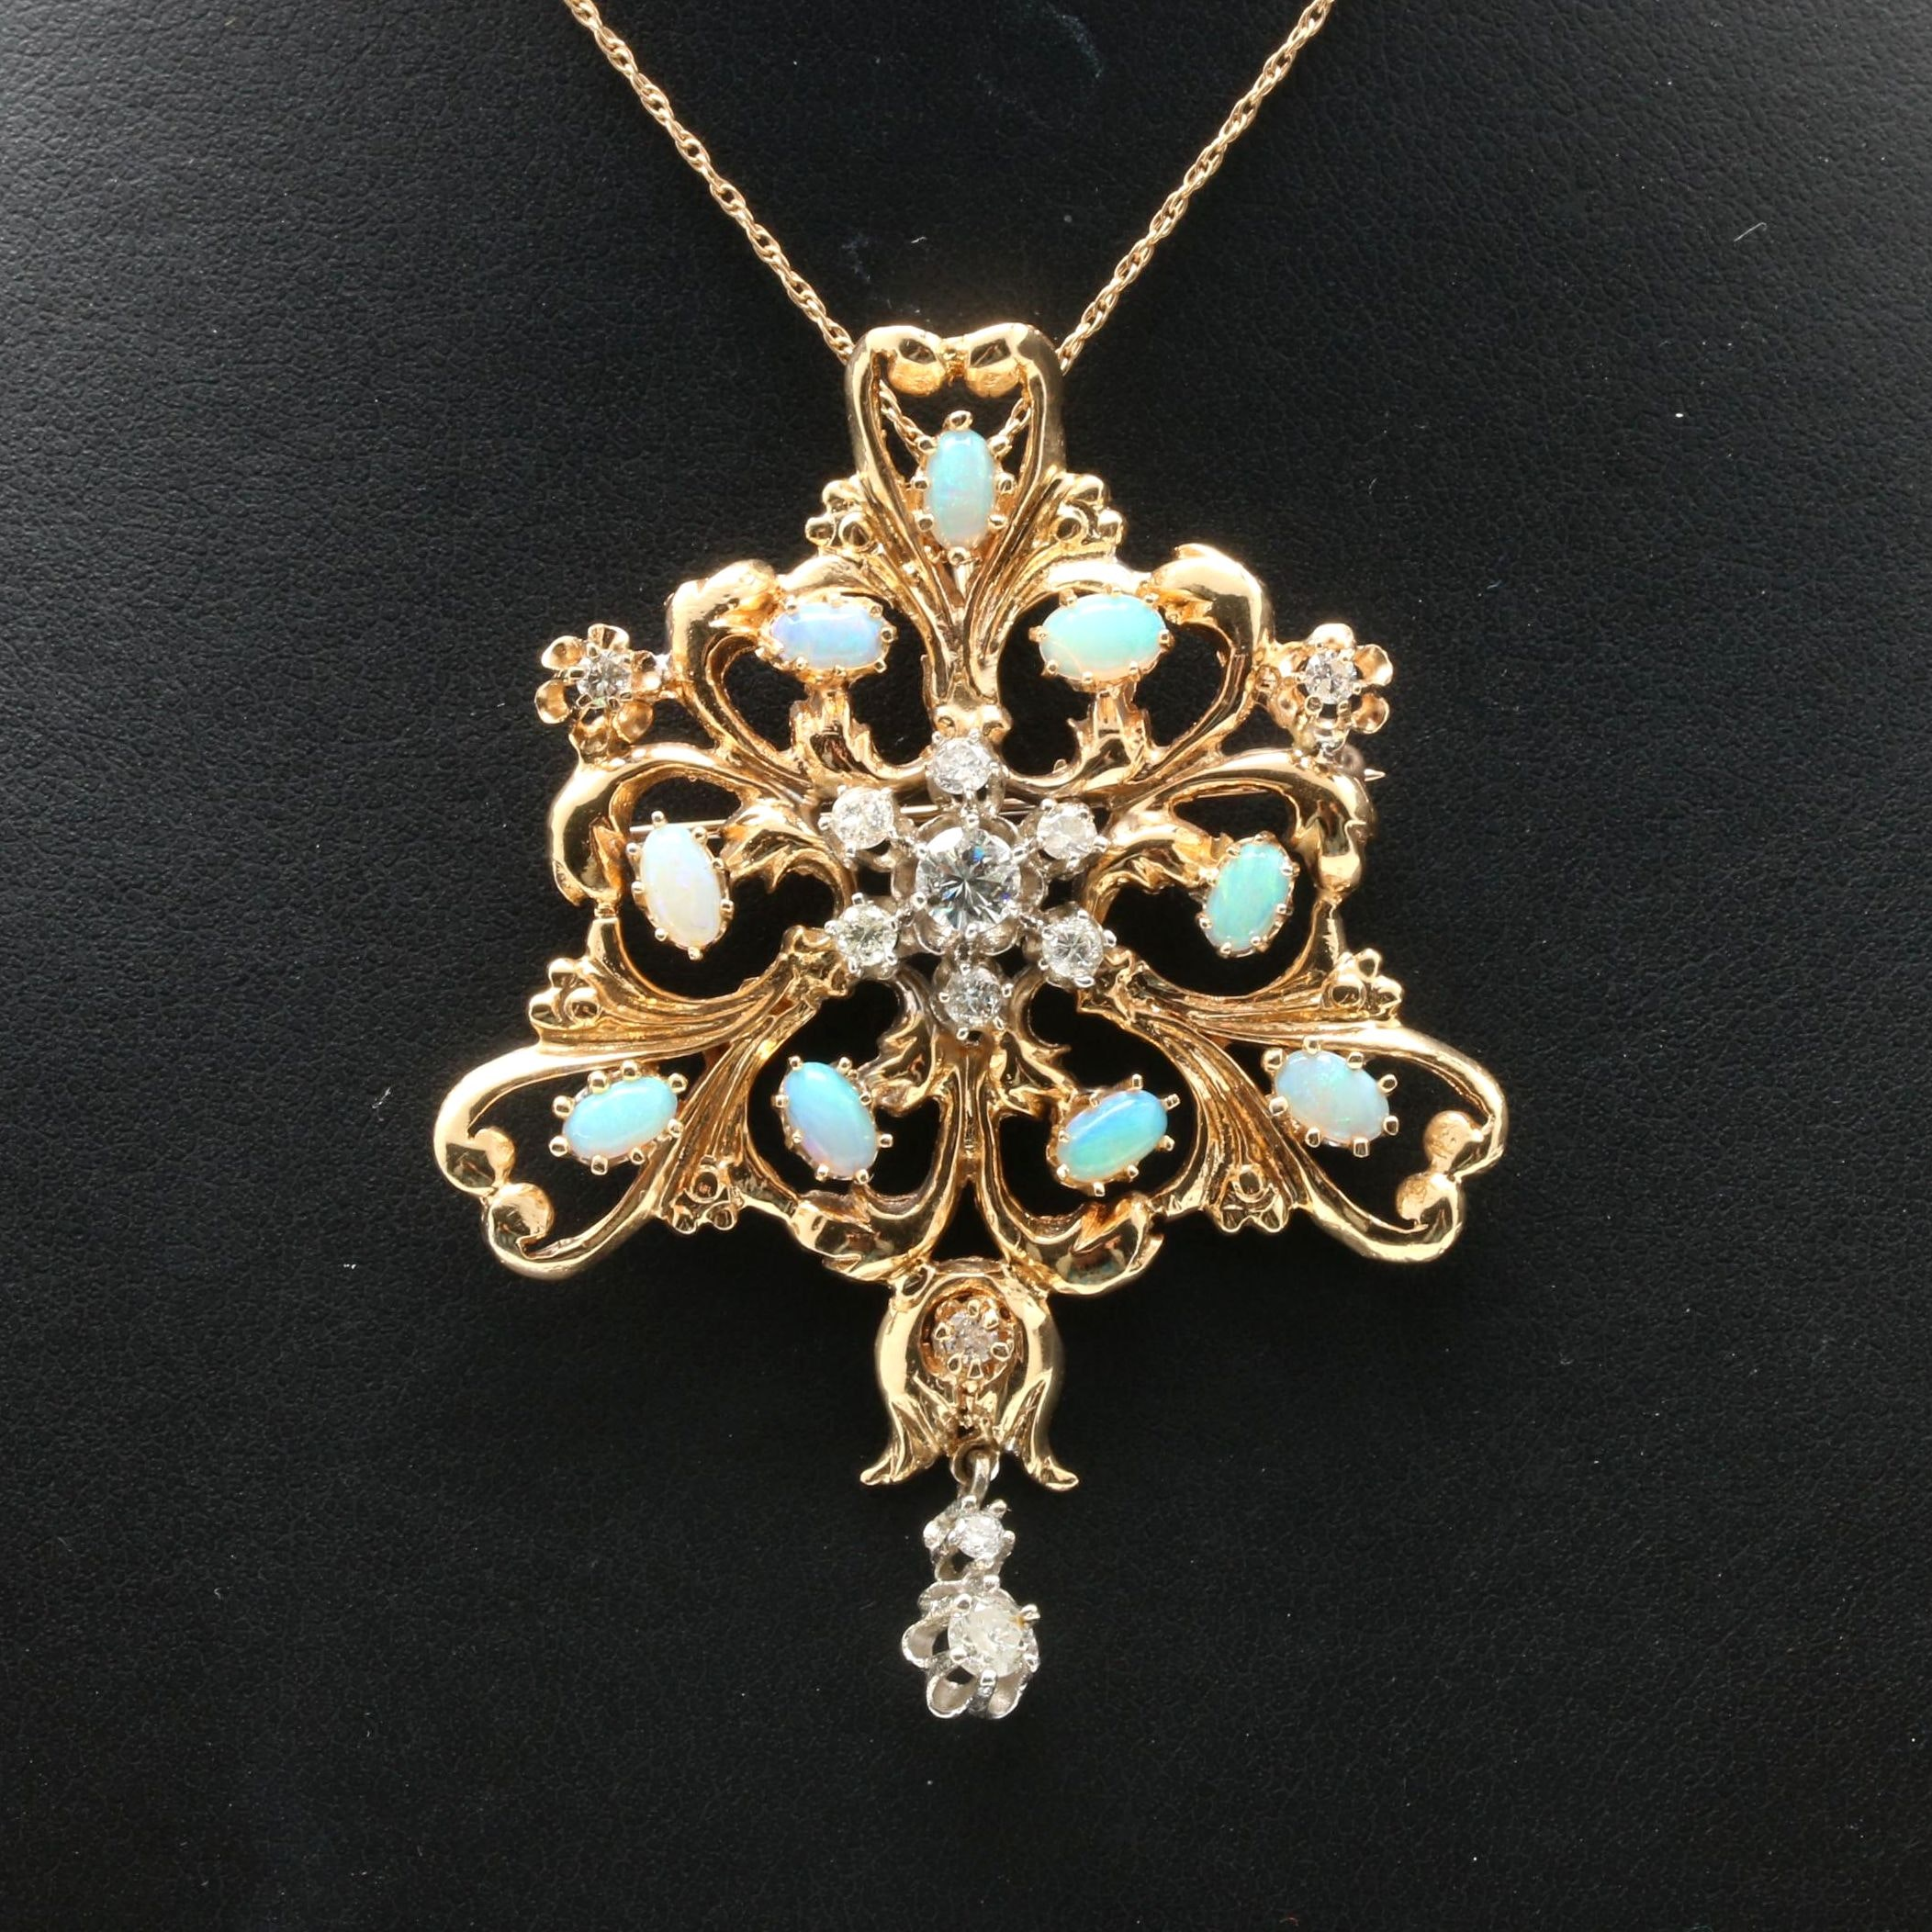 Vintage 14K Yellow Gold Diamond and Opal Pendant Necklace